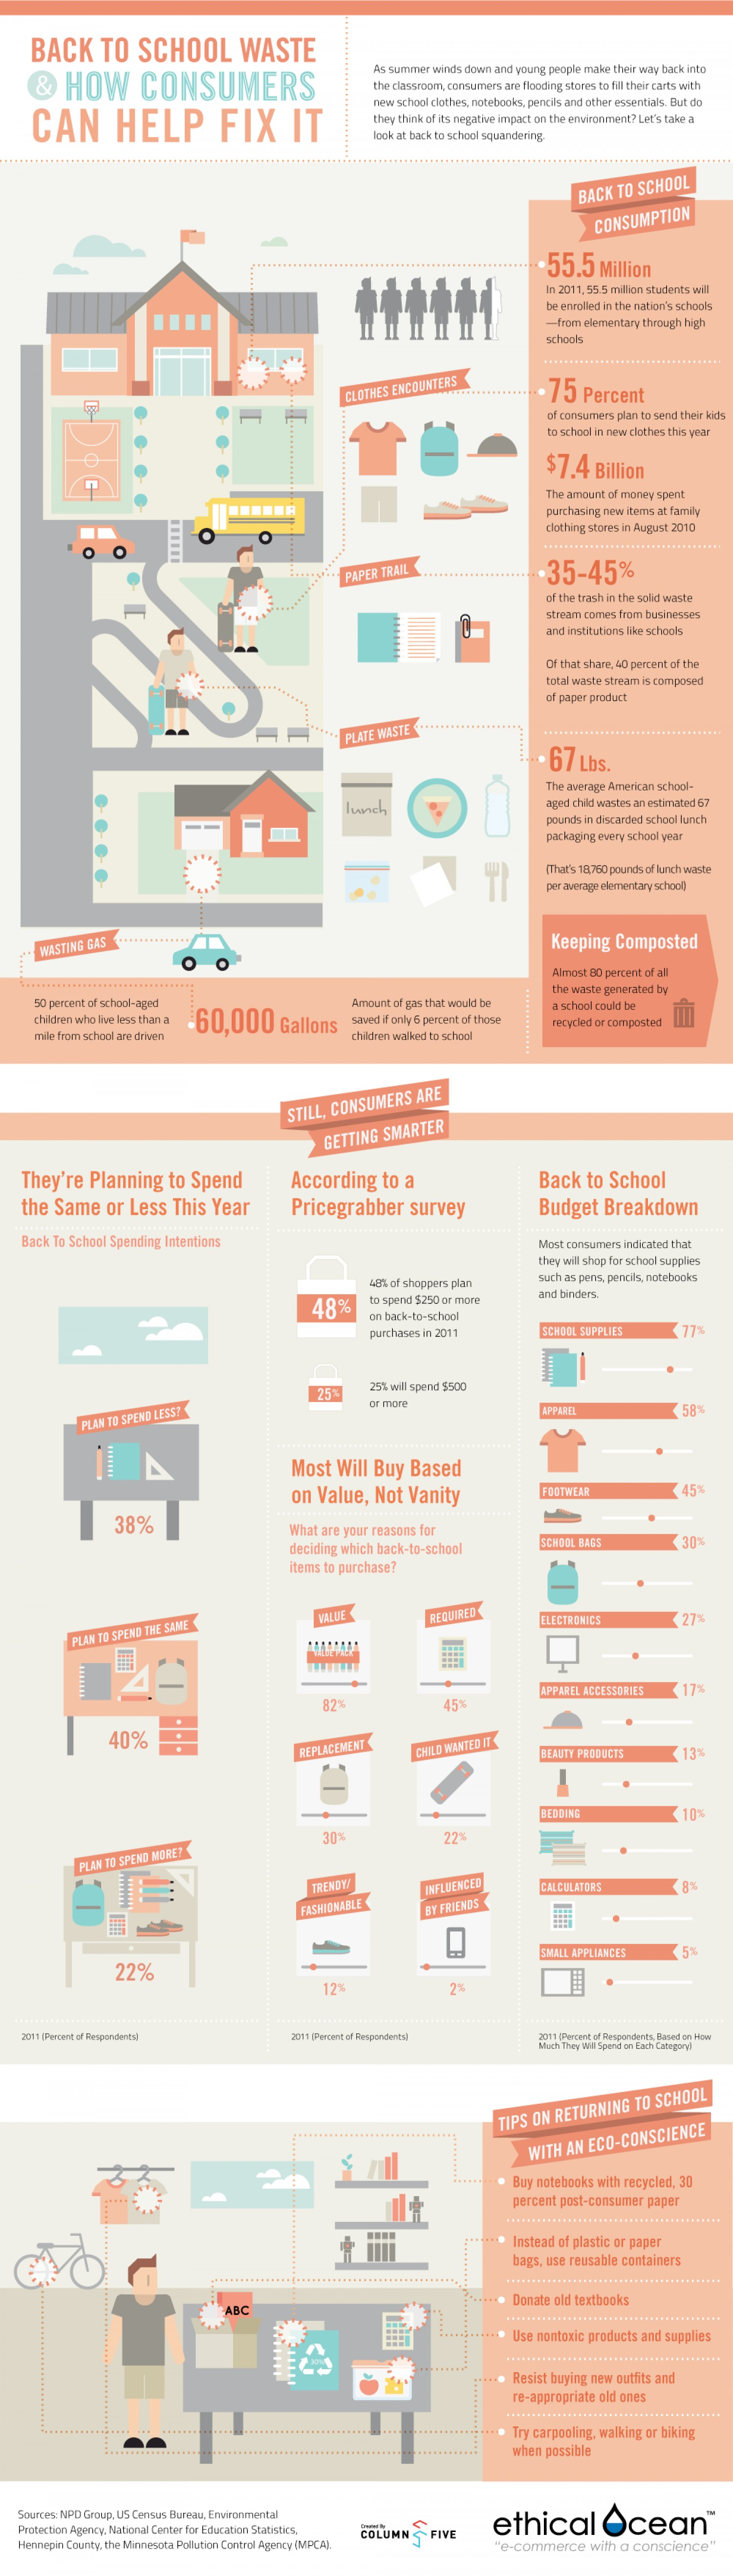 Back to school waste and how consumers can help fix it